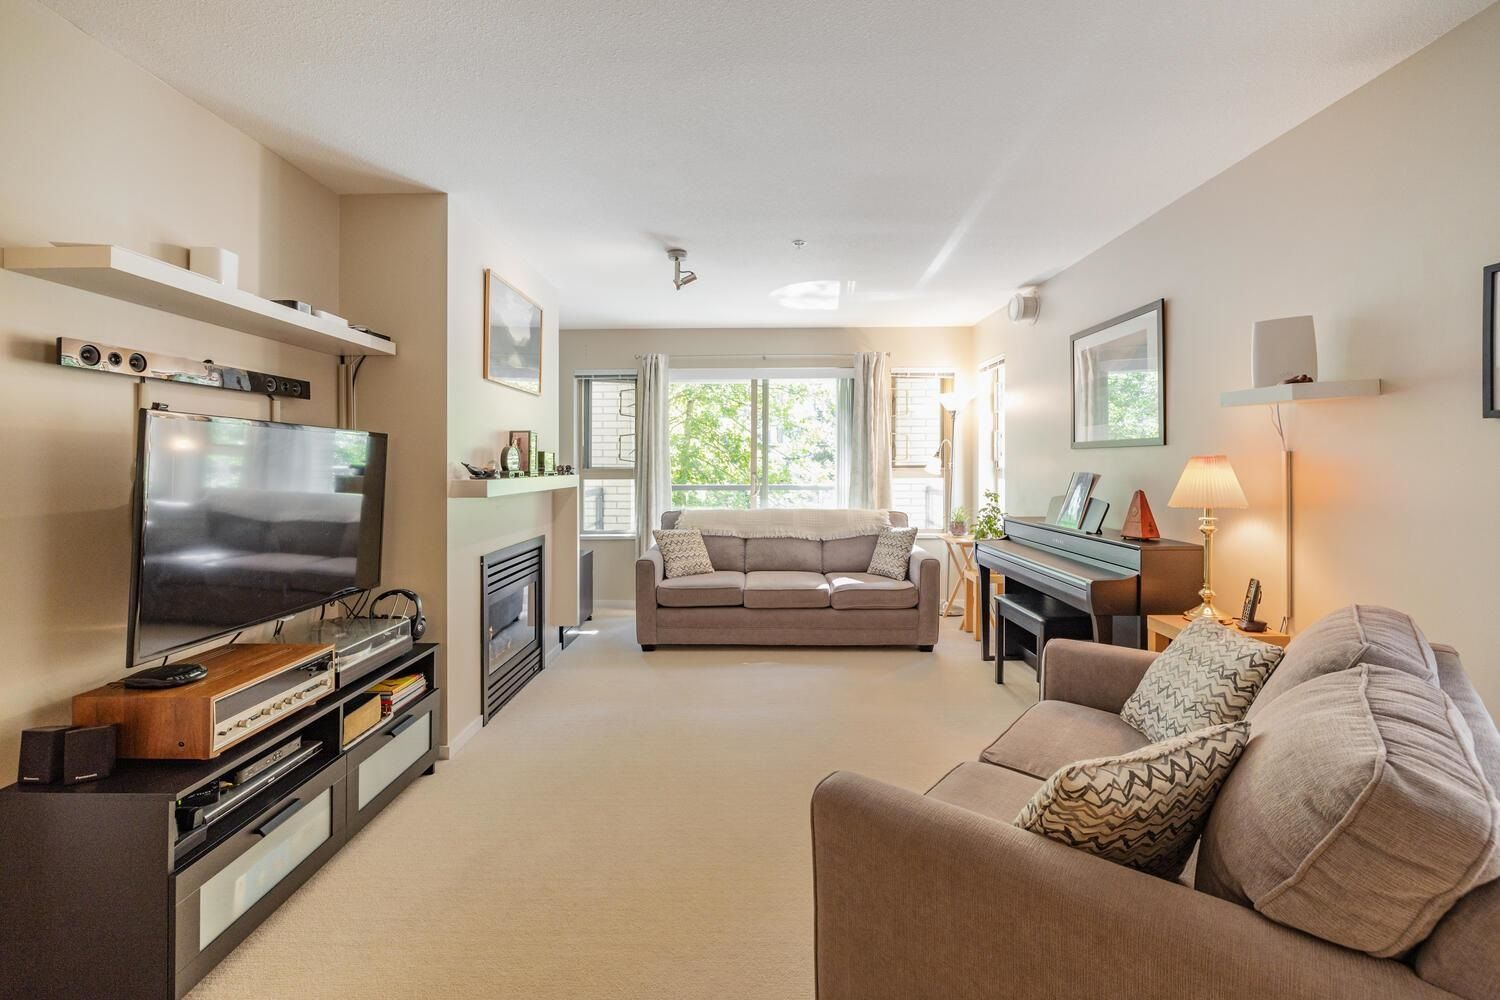 """Main Photo: 307 9319 UNIVERSITY Crescent in Burnaby: Simon Fraser Univer. Condo for sale in """"Harmony at the Highlands"""" (Burnaby North)  : MLS®# R2606312"""